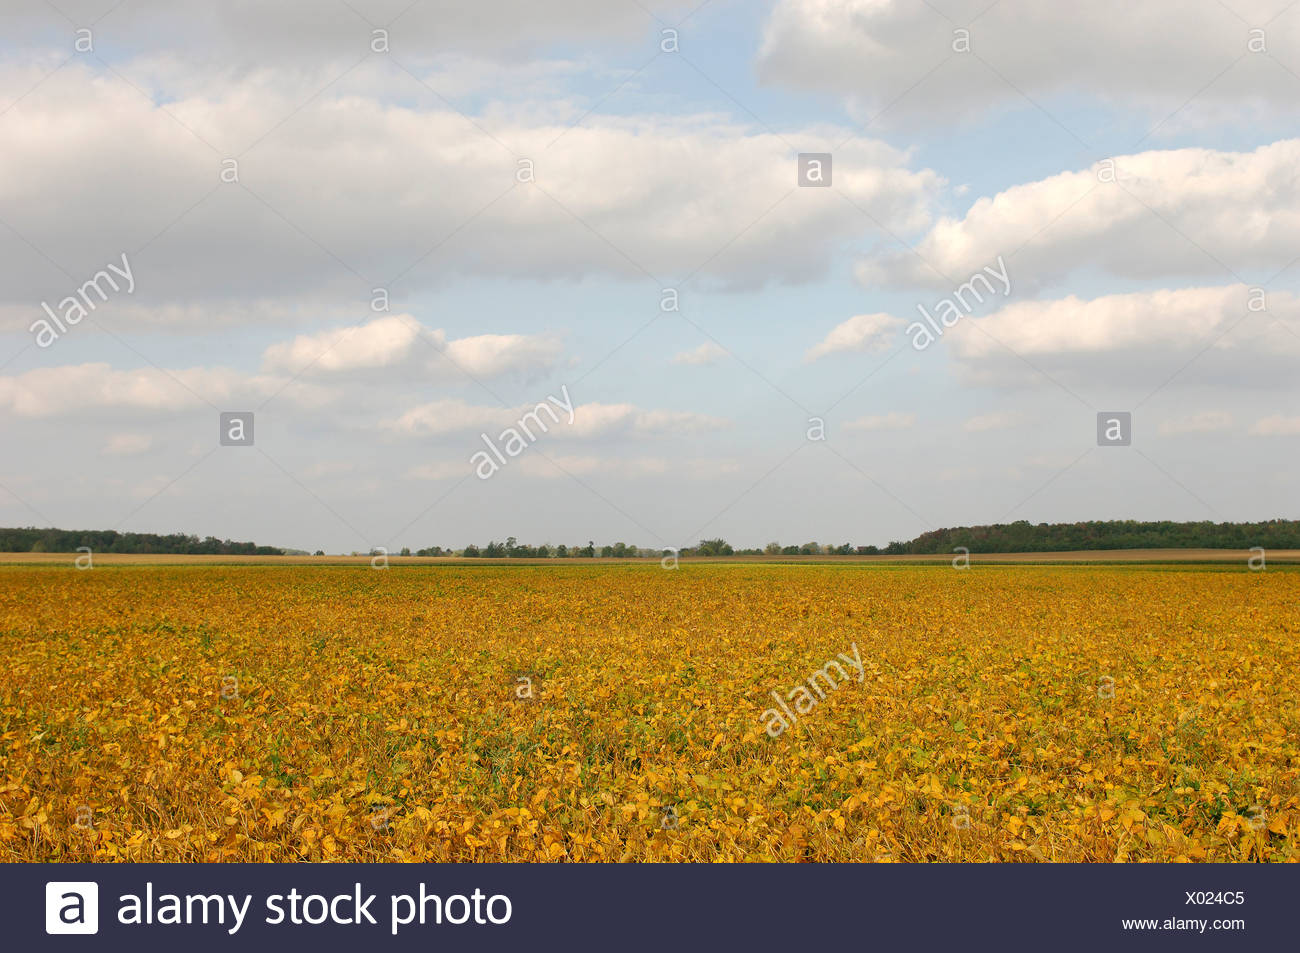 fields field agriculture soy soy bean cultivation outhouse scenery landscape Forest Ontario Canada - Stock Image